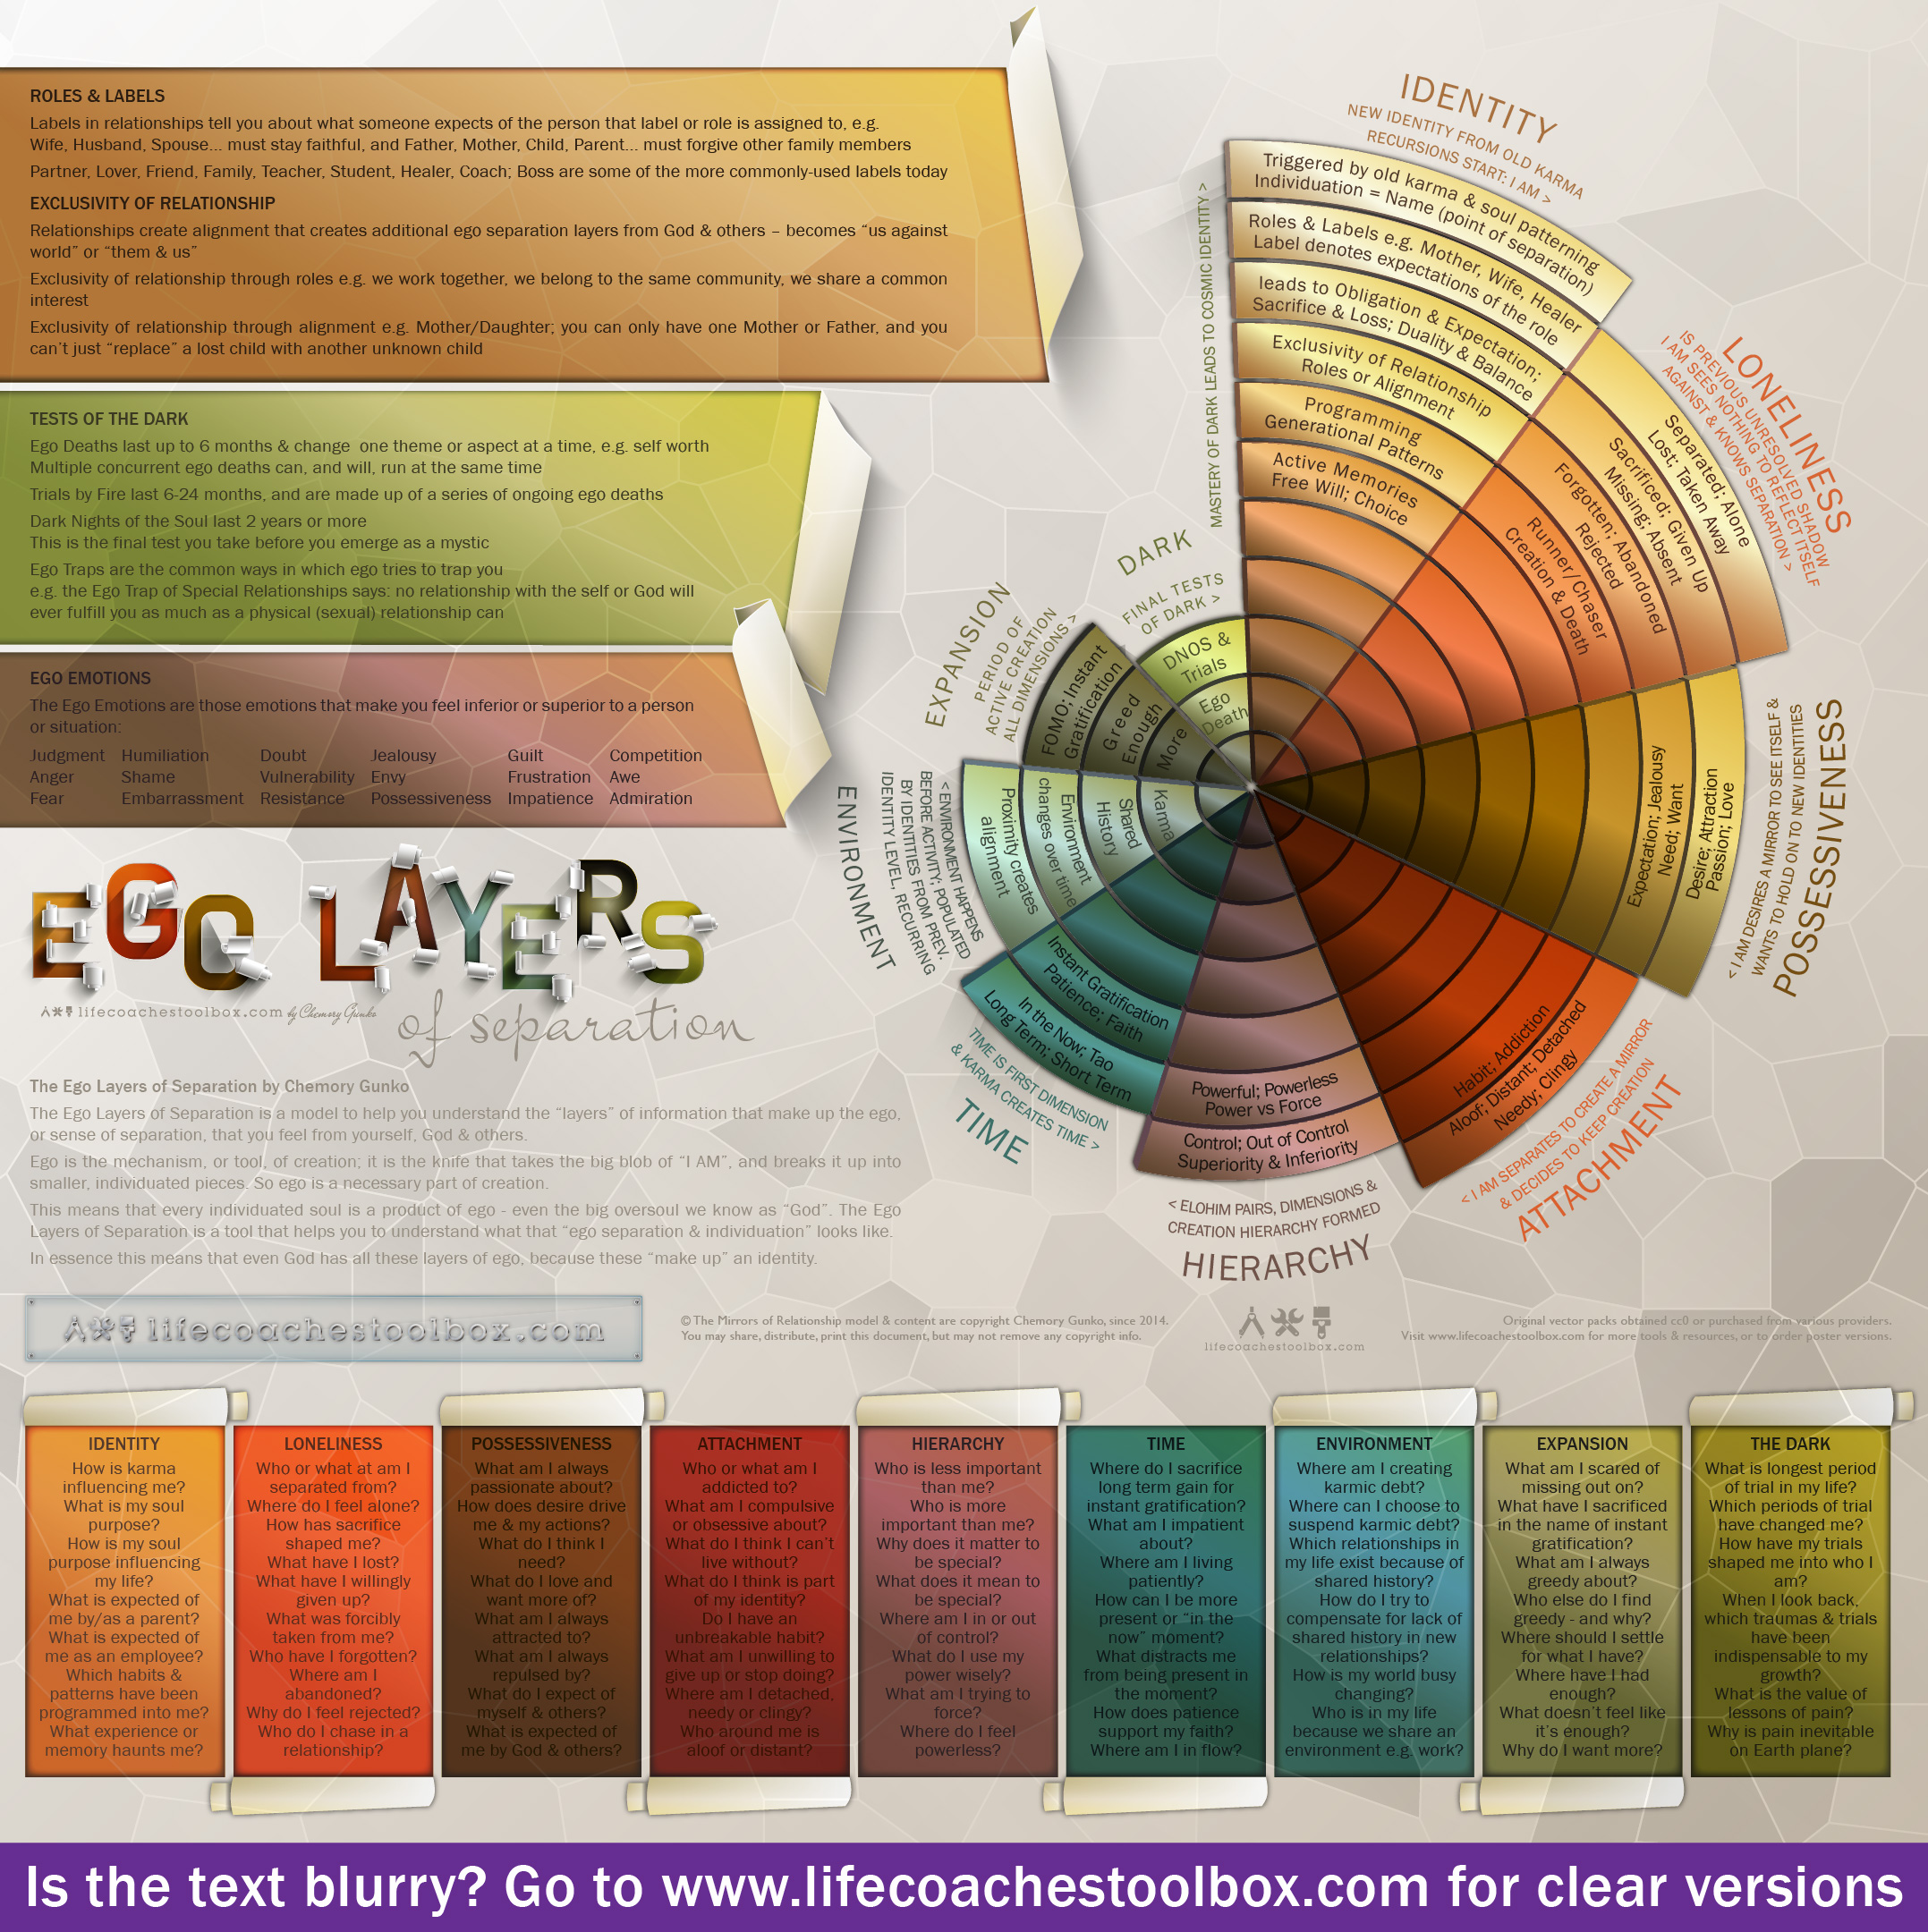 Layers of Ego